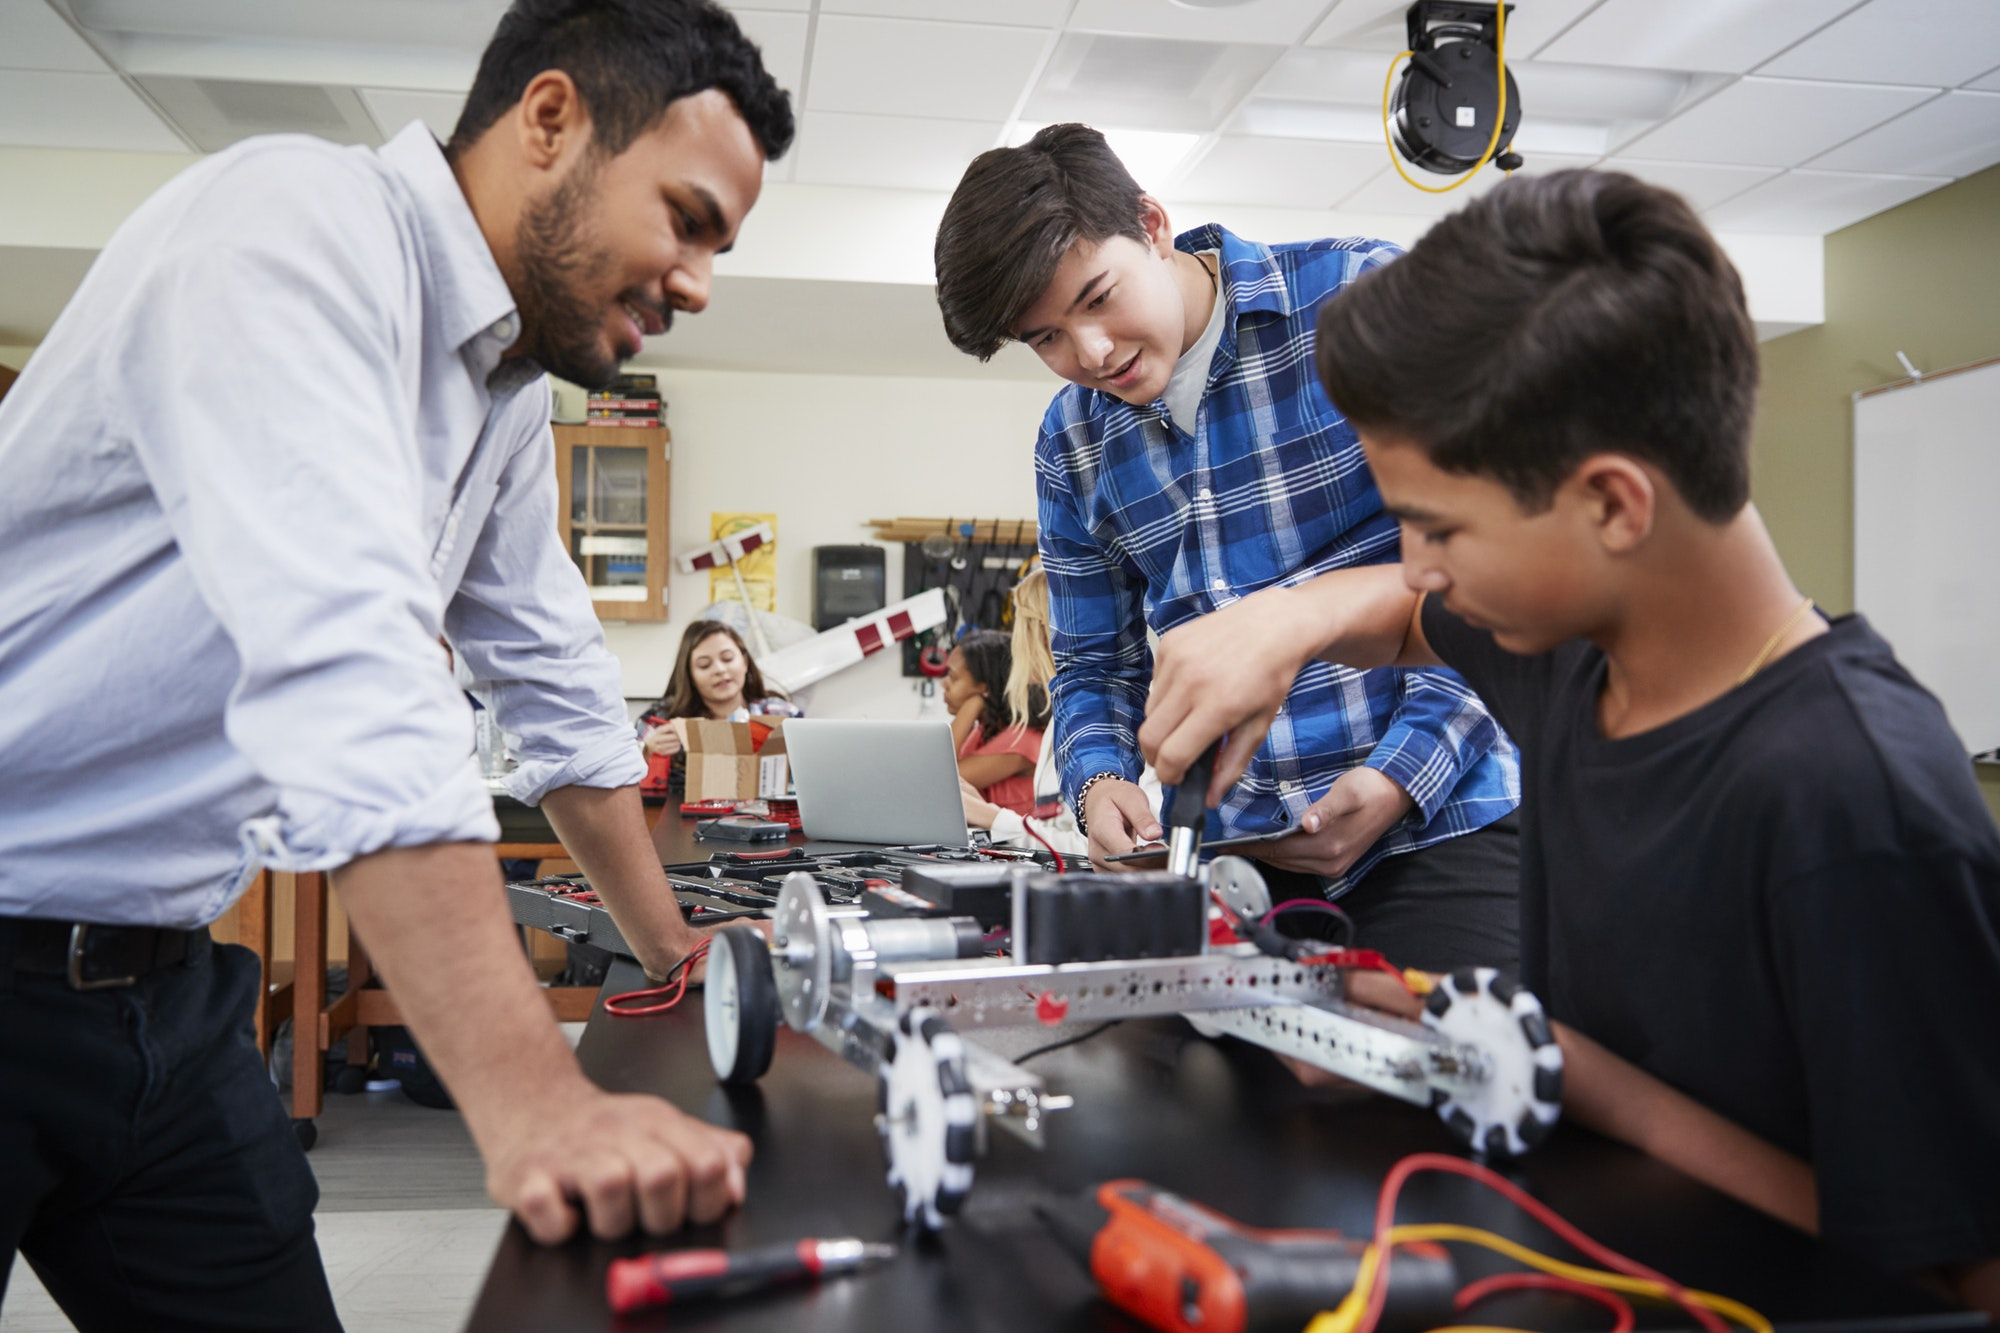 teacher-with-male-pupils-building-robotic-vehicle-in-science-lesson.jpg